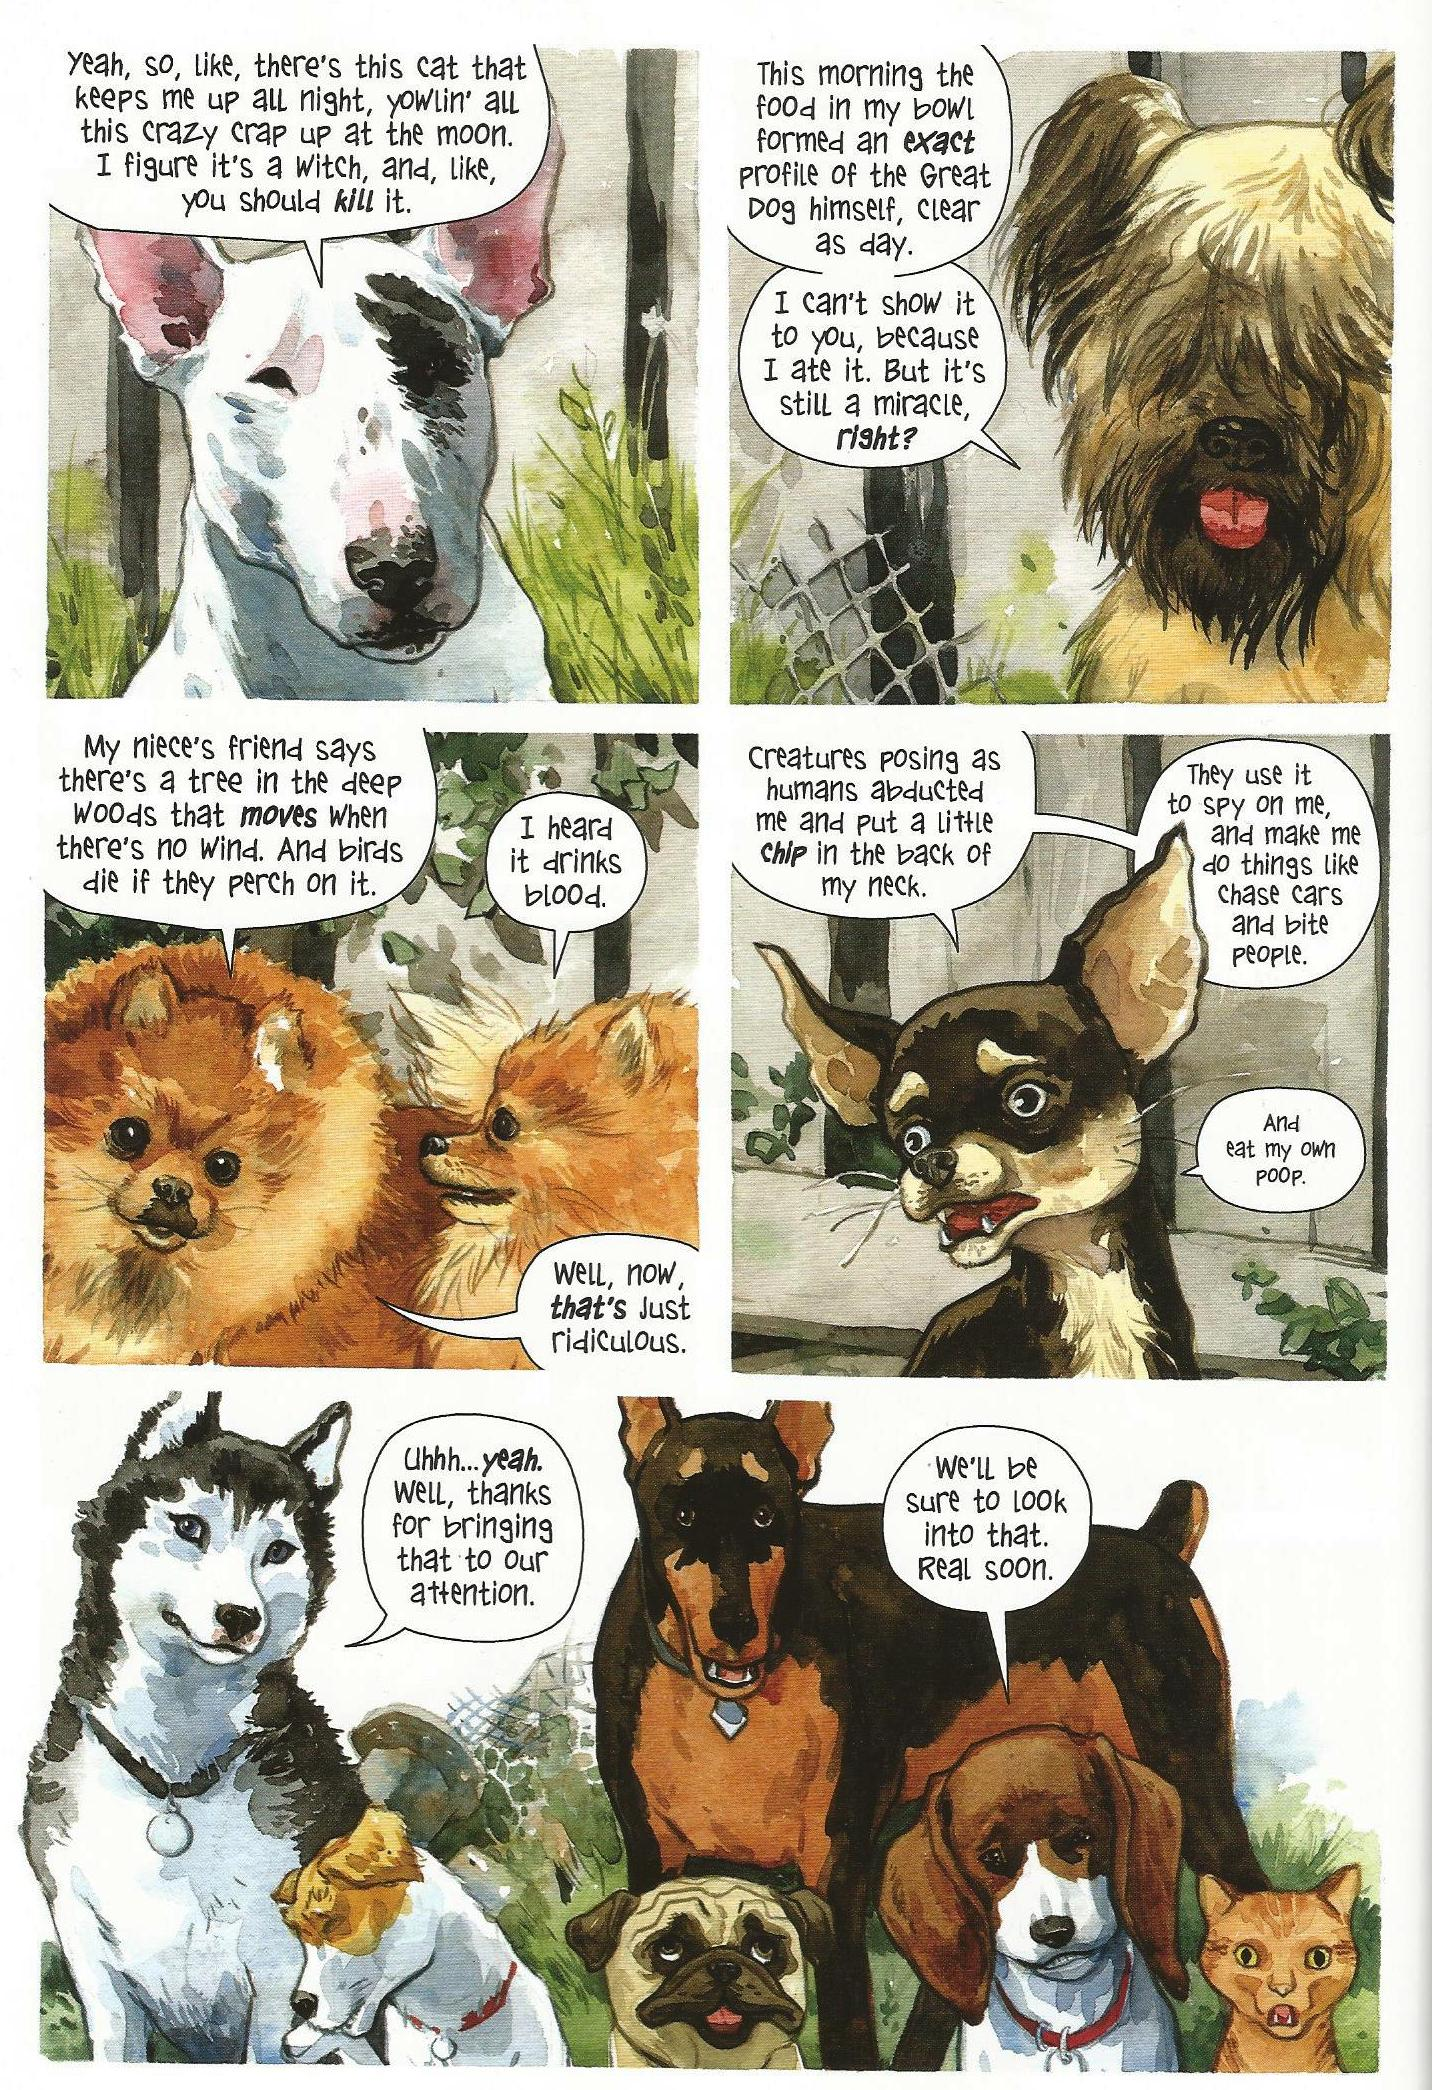 Beasts of Burden review